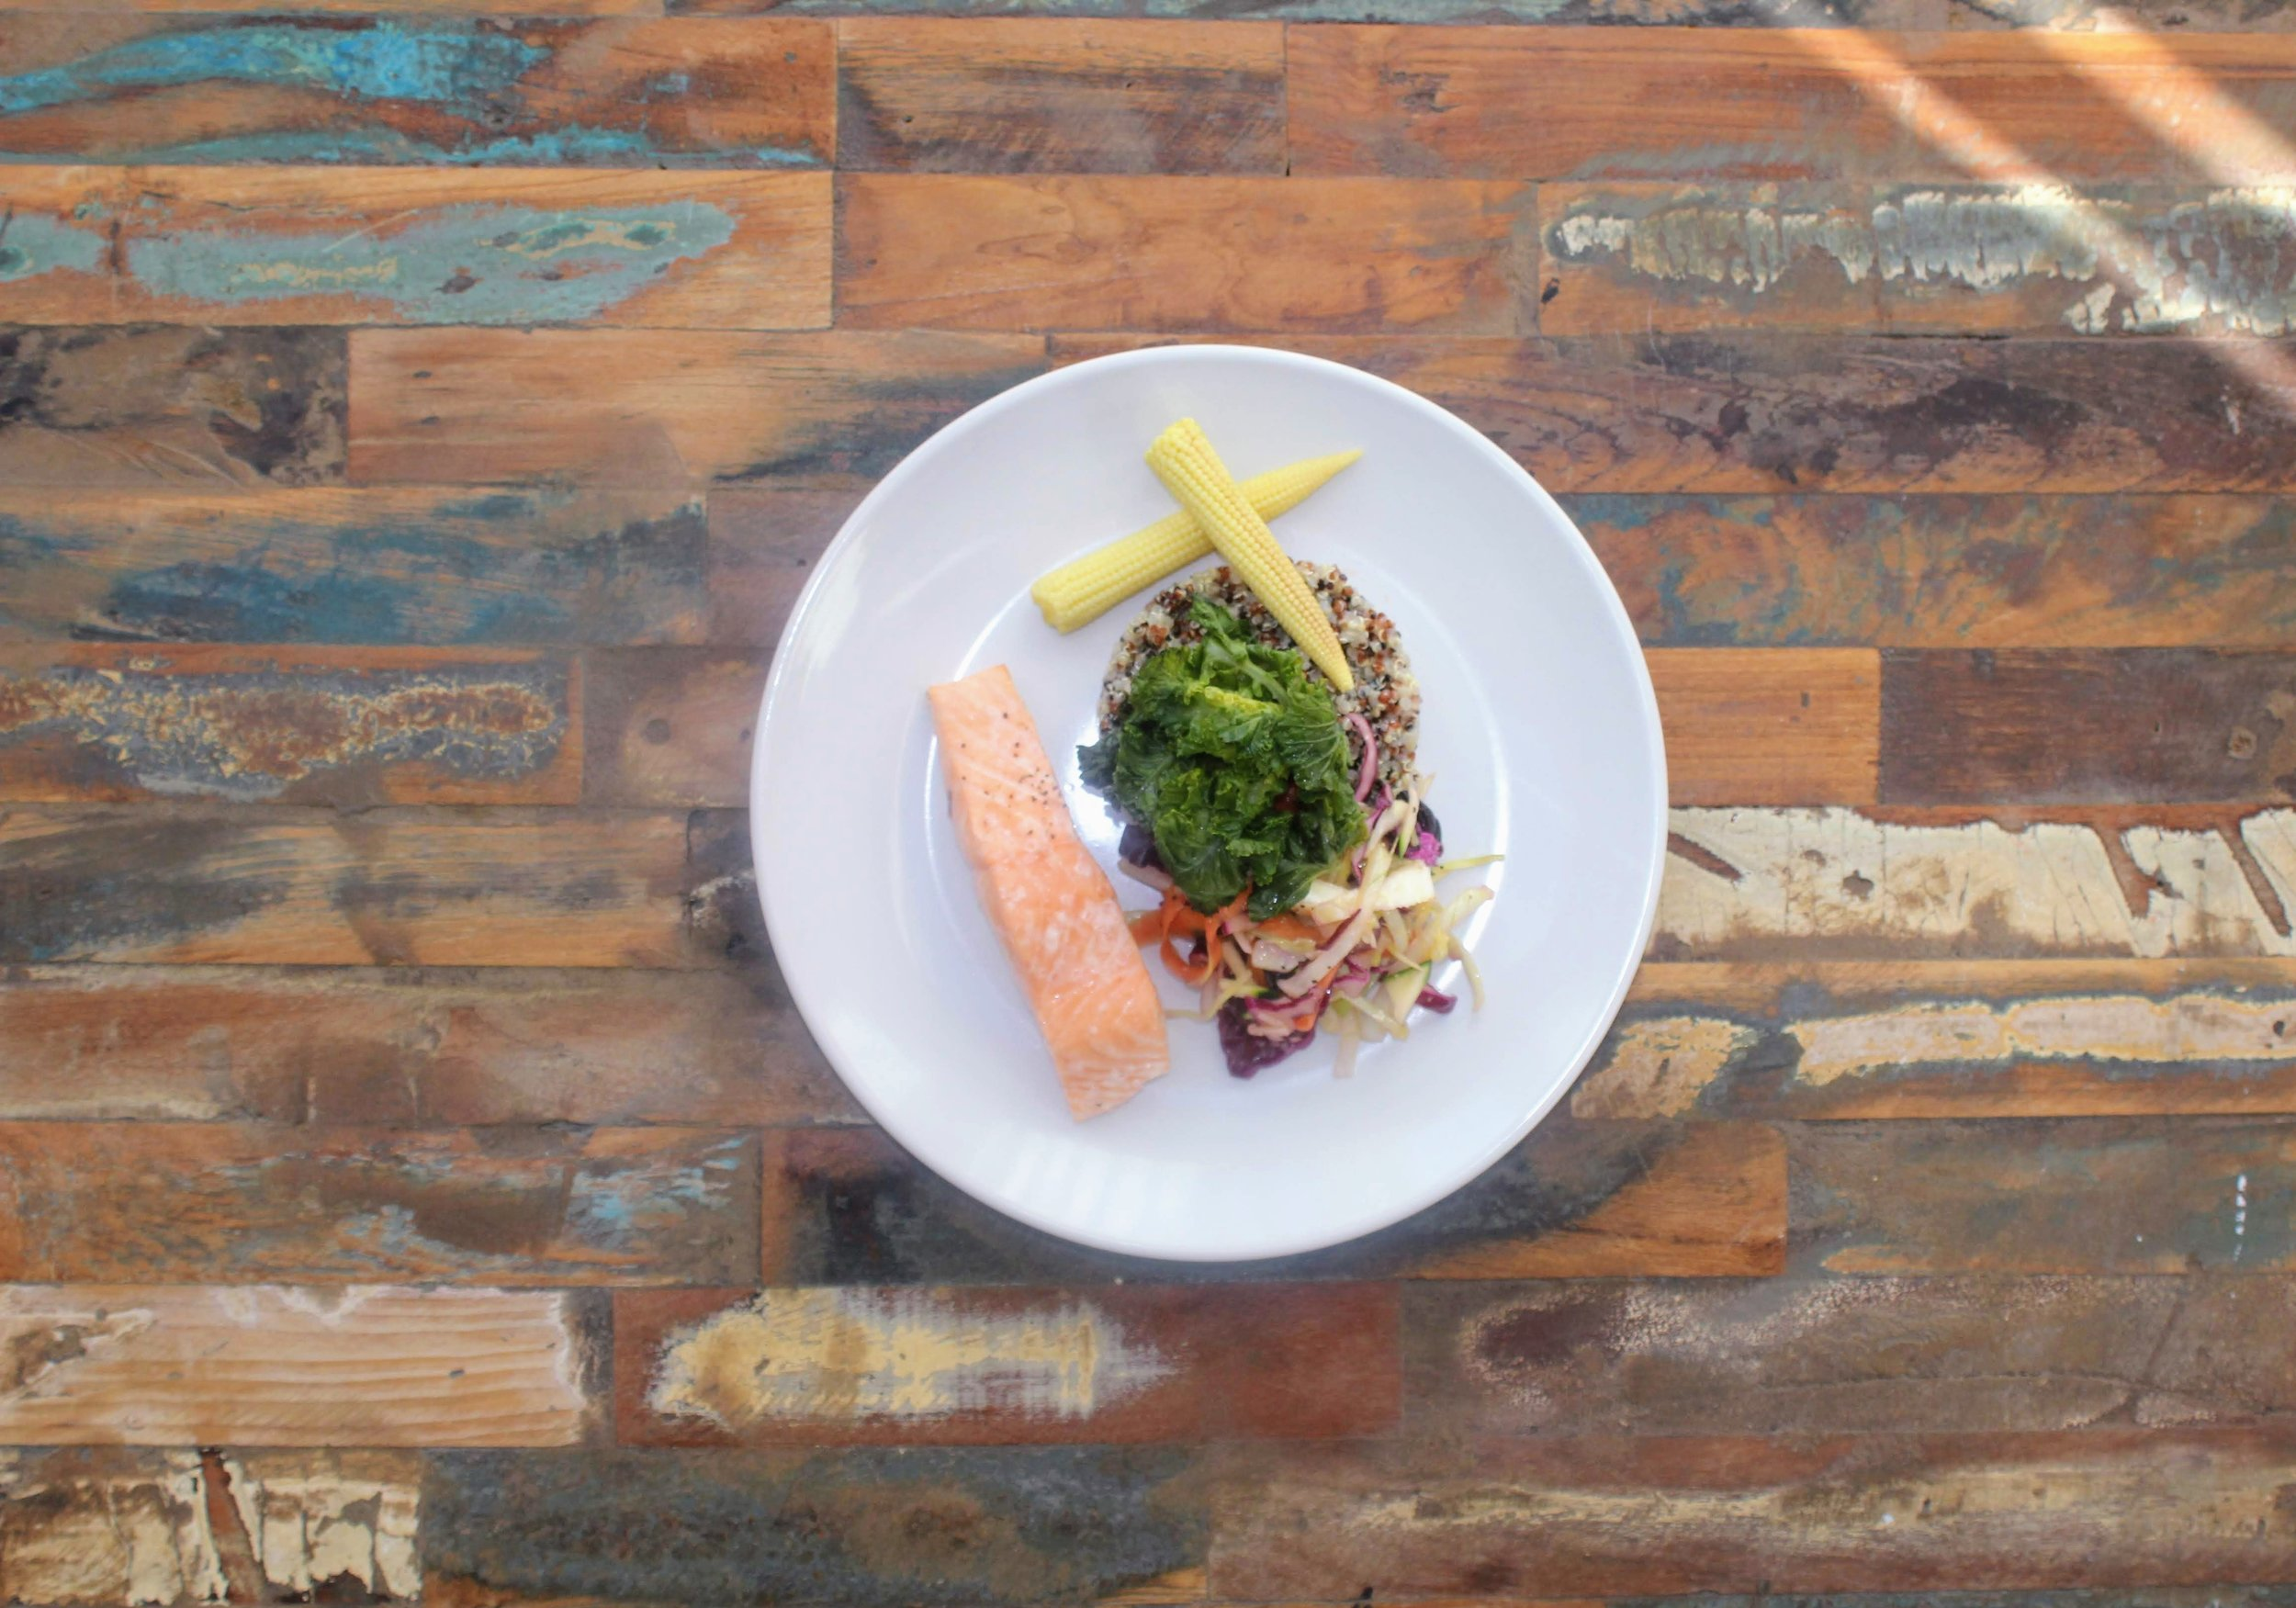 Poached salmon with quinoa and veg